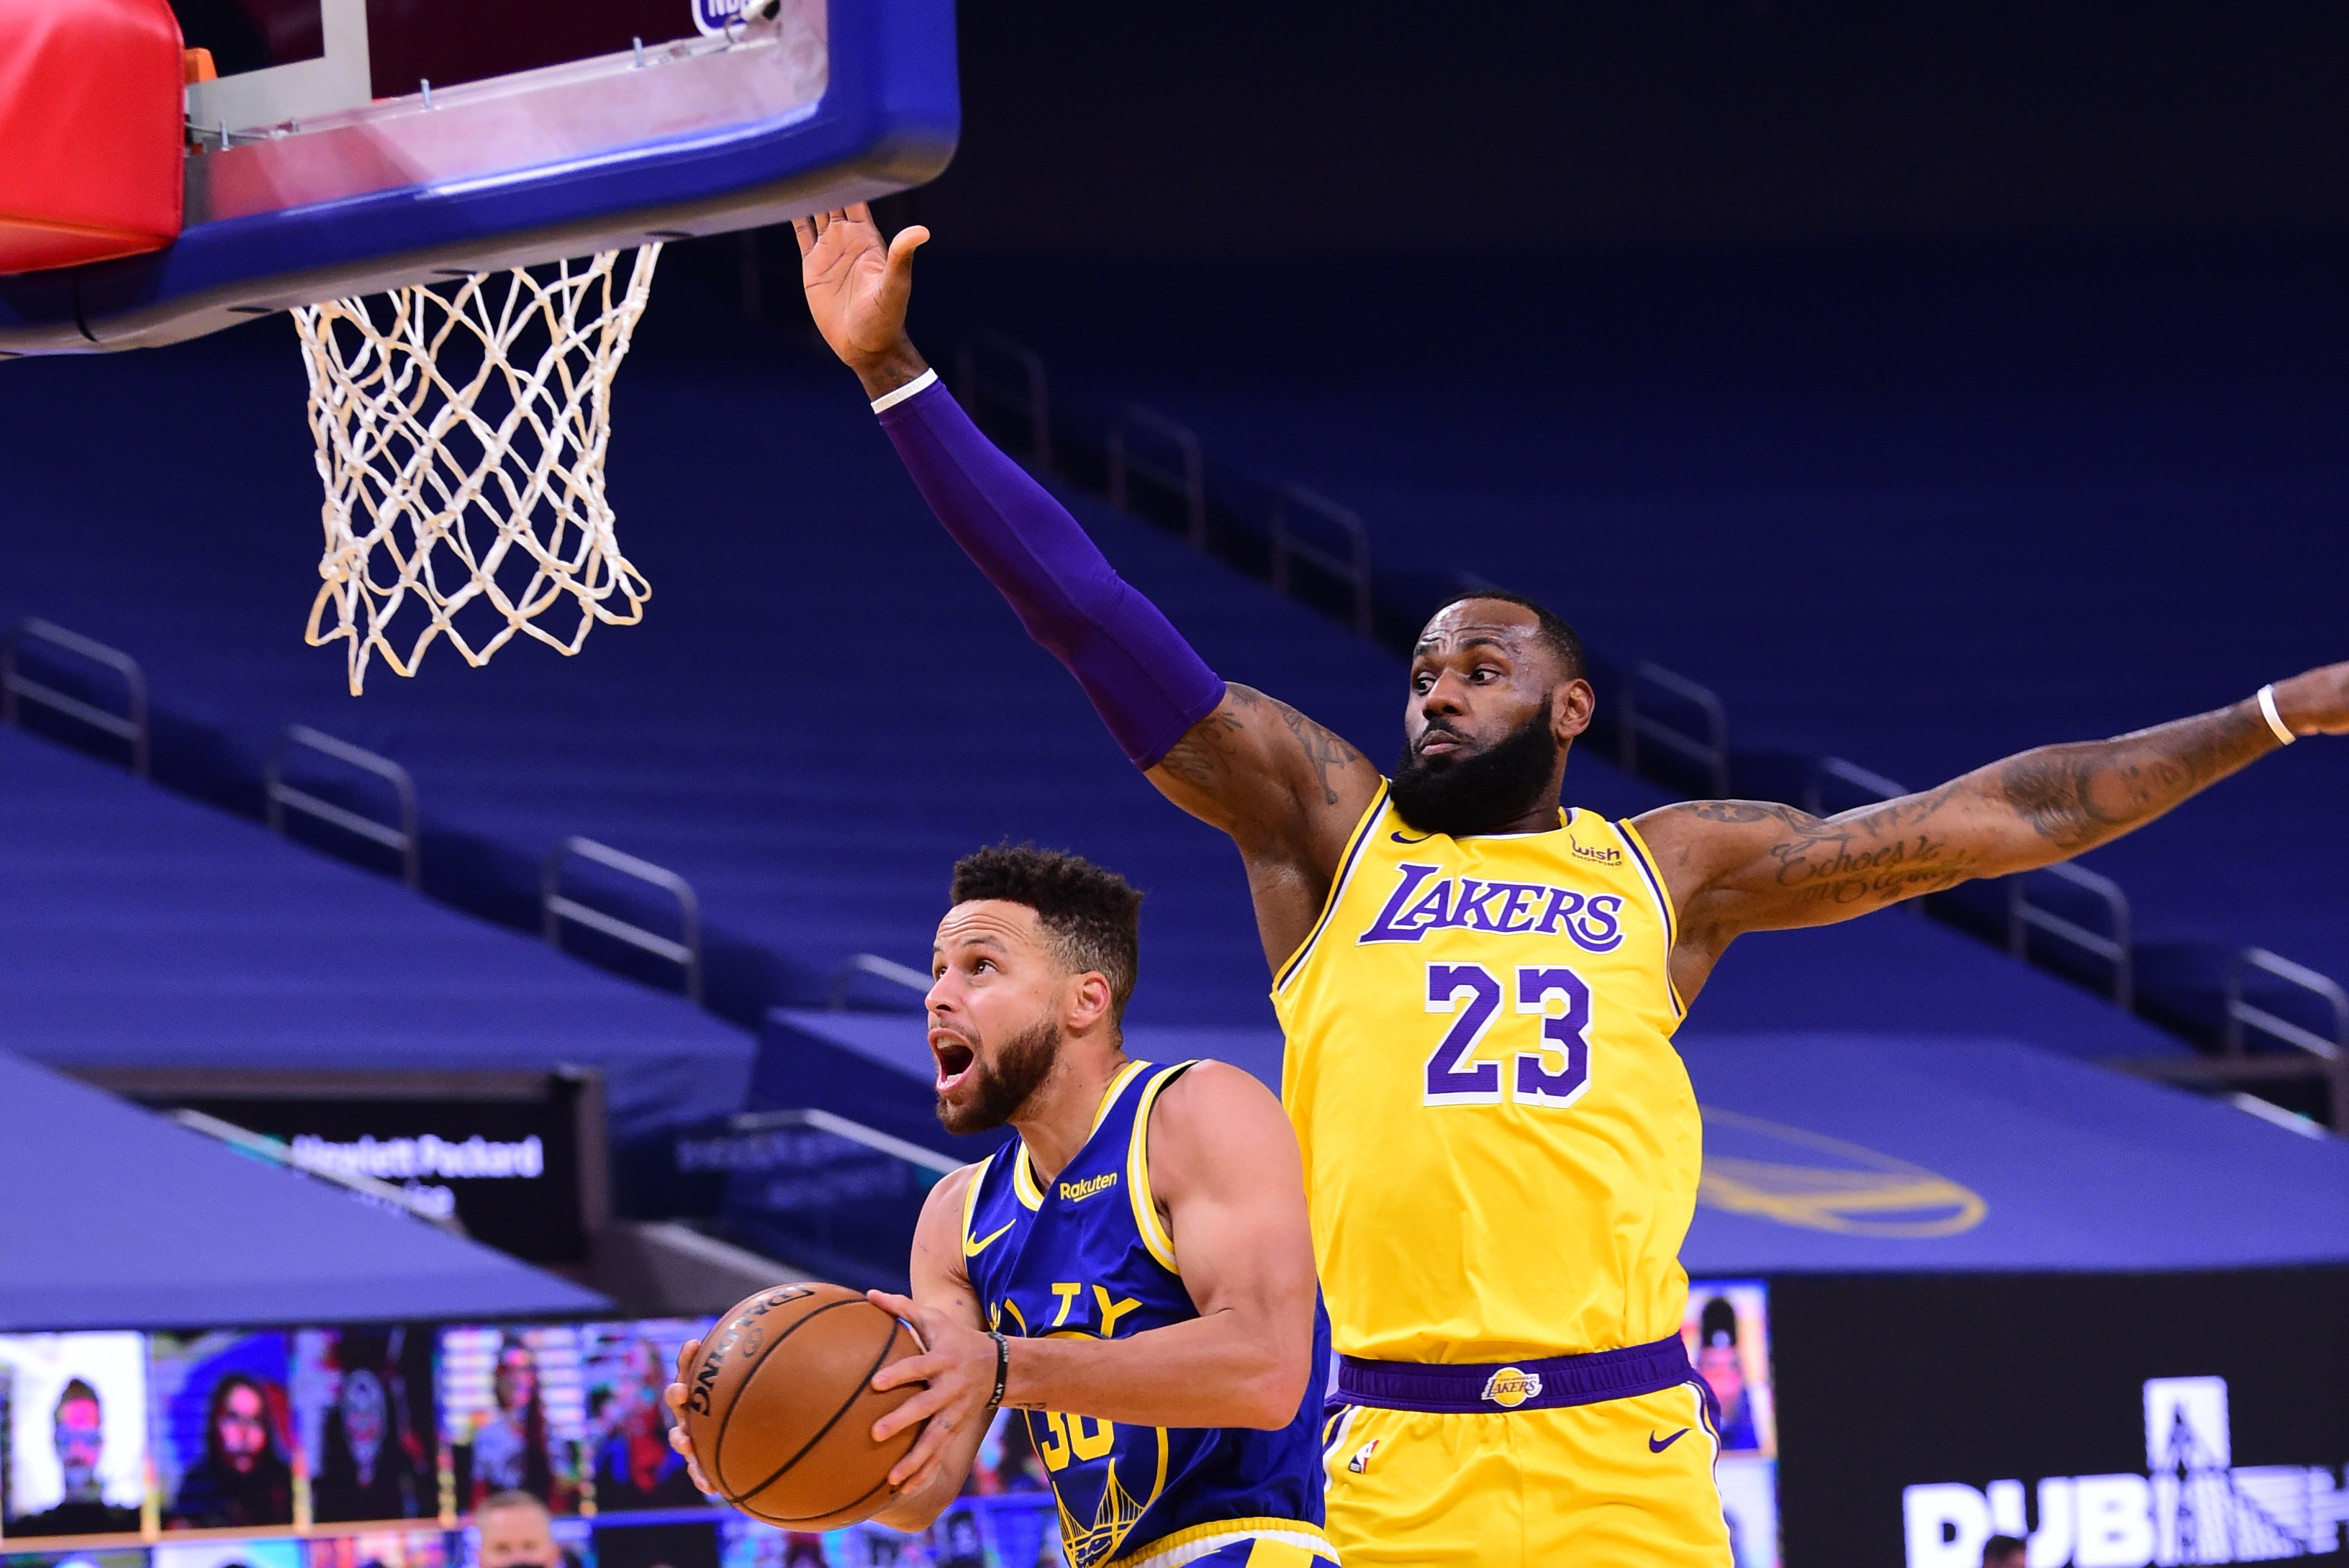 Anthony Davis: Lakers' Play-In Game vs. Warriors Is 'Definitely Going to be Tough' | Bleacher Report | Latest News, Videos and Highlights